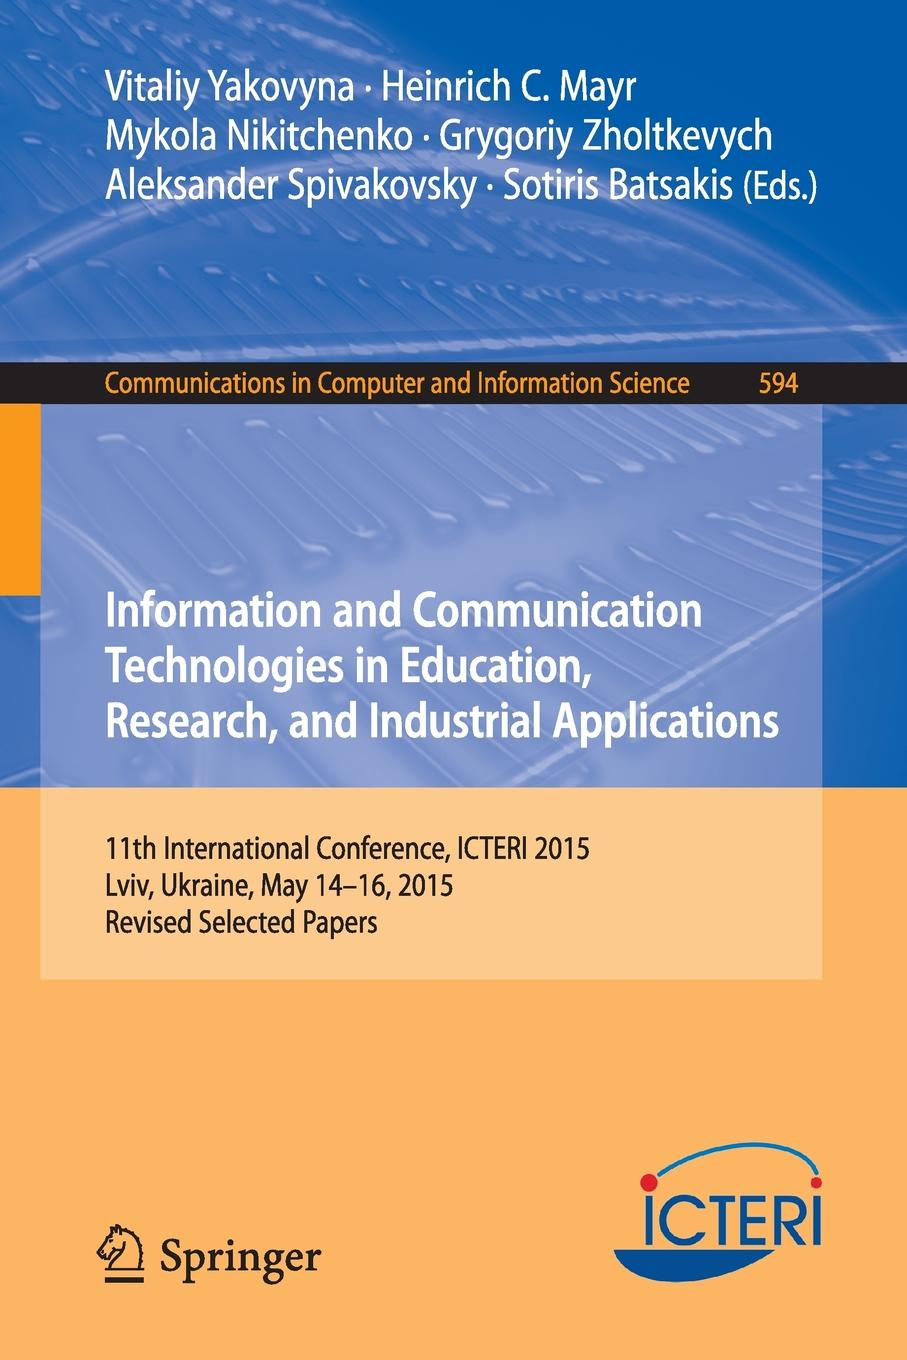 Information and Communication Technologies in Education, Research, and Industrial Applications. 11th International Conference, ICTERI 2015, Lviv, Ukraine, May 14-16, 2015, Revised Selected Papers cross national information and communication technology policies and practices in education revised second edition pb